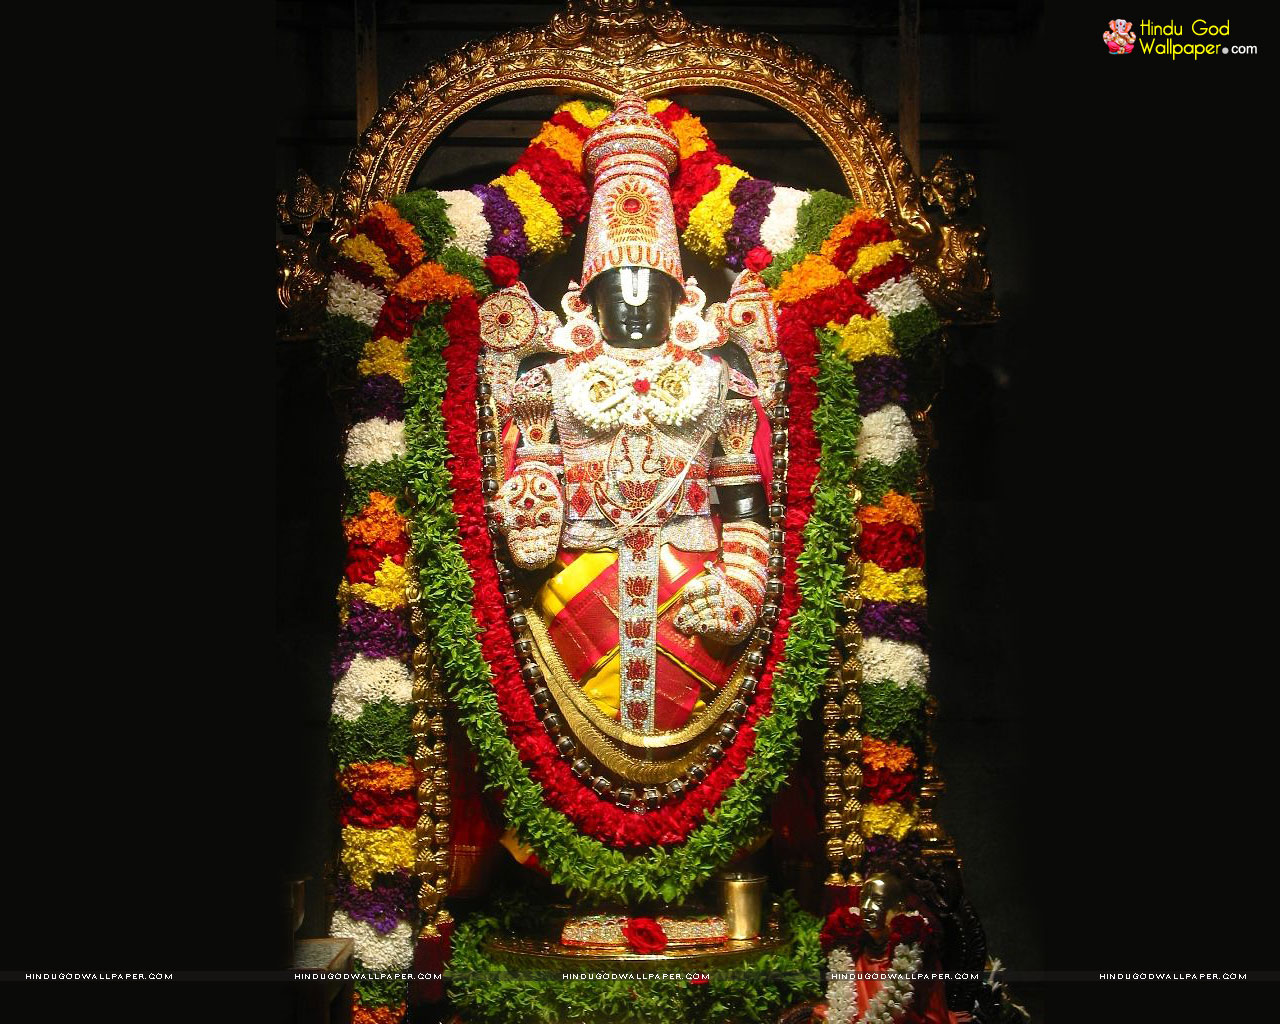 Wallpapers Of Lord Venkateswara Free Downloads